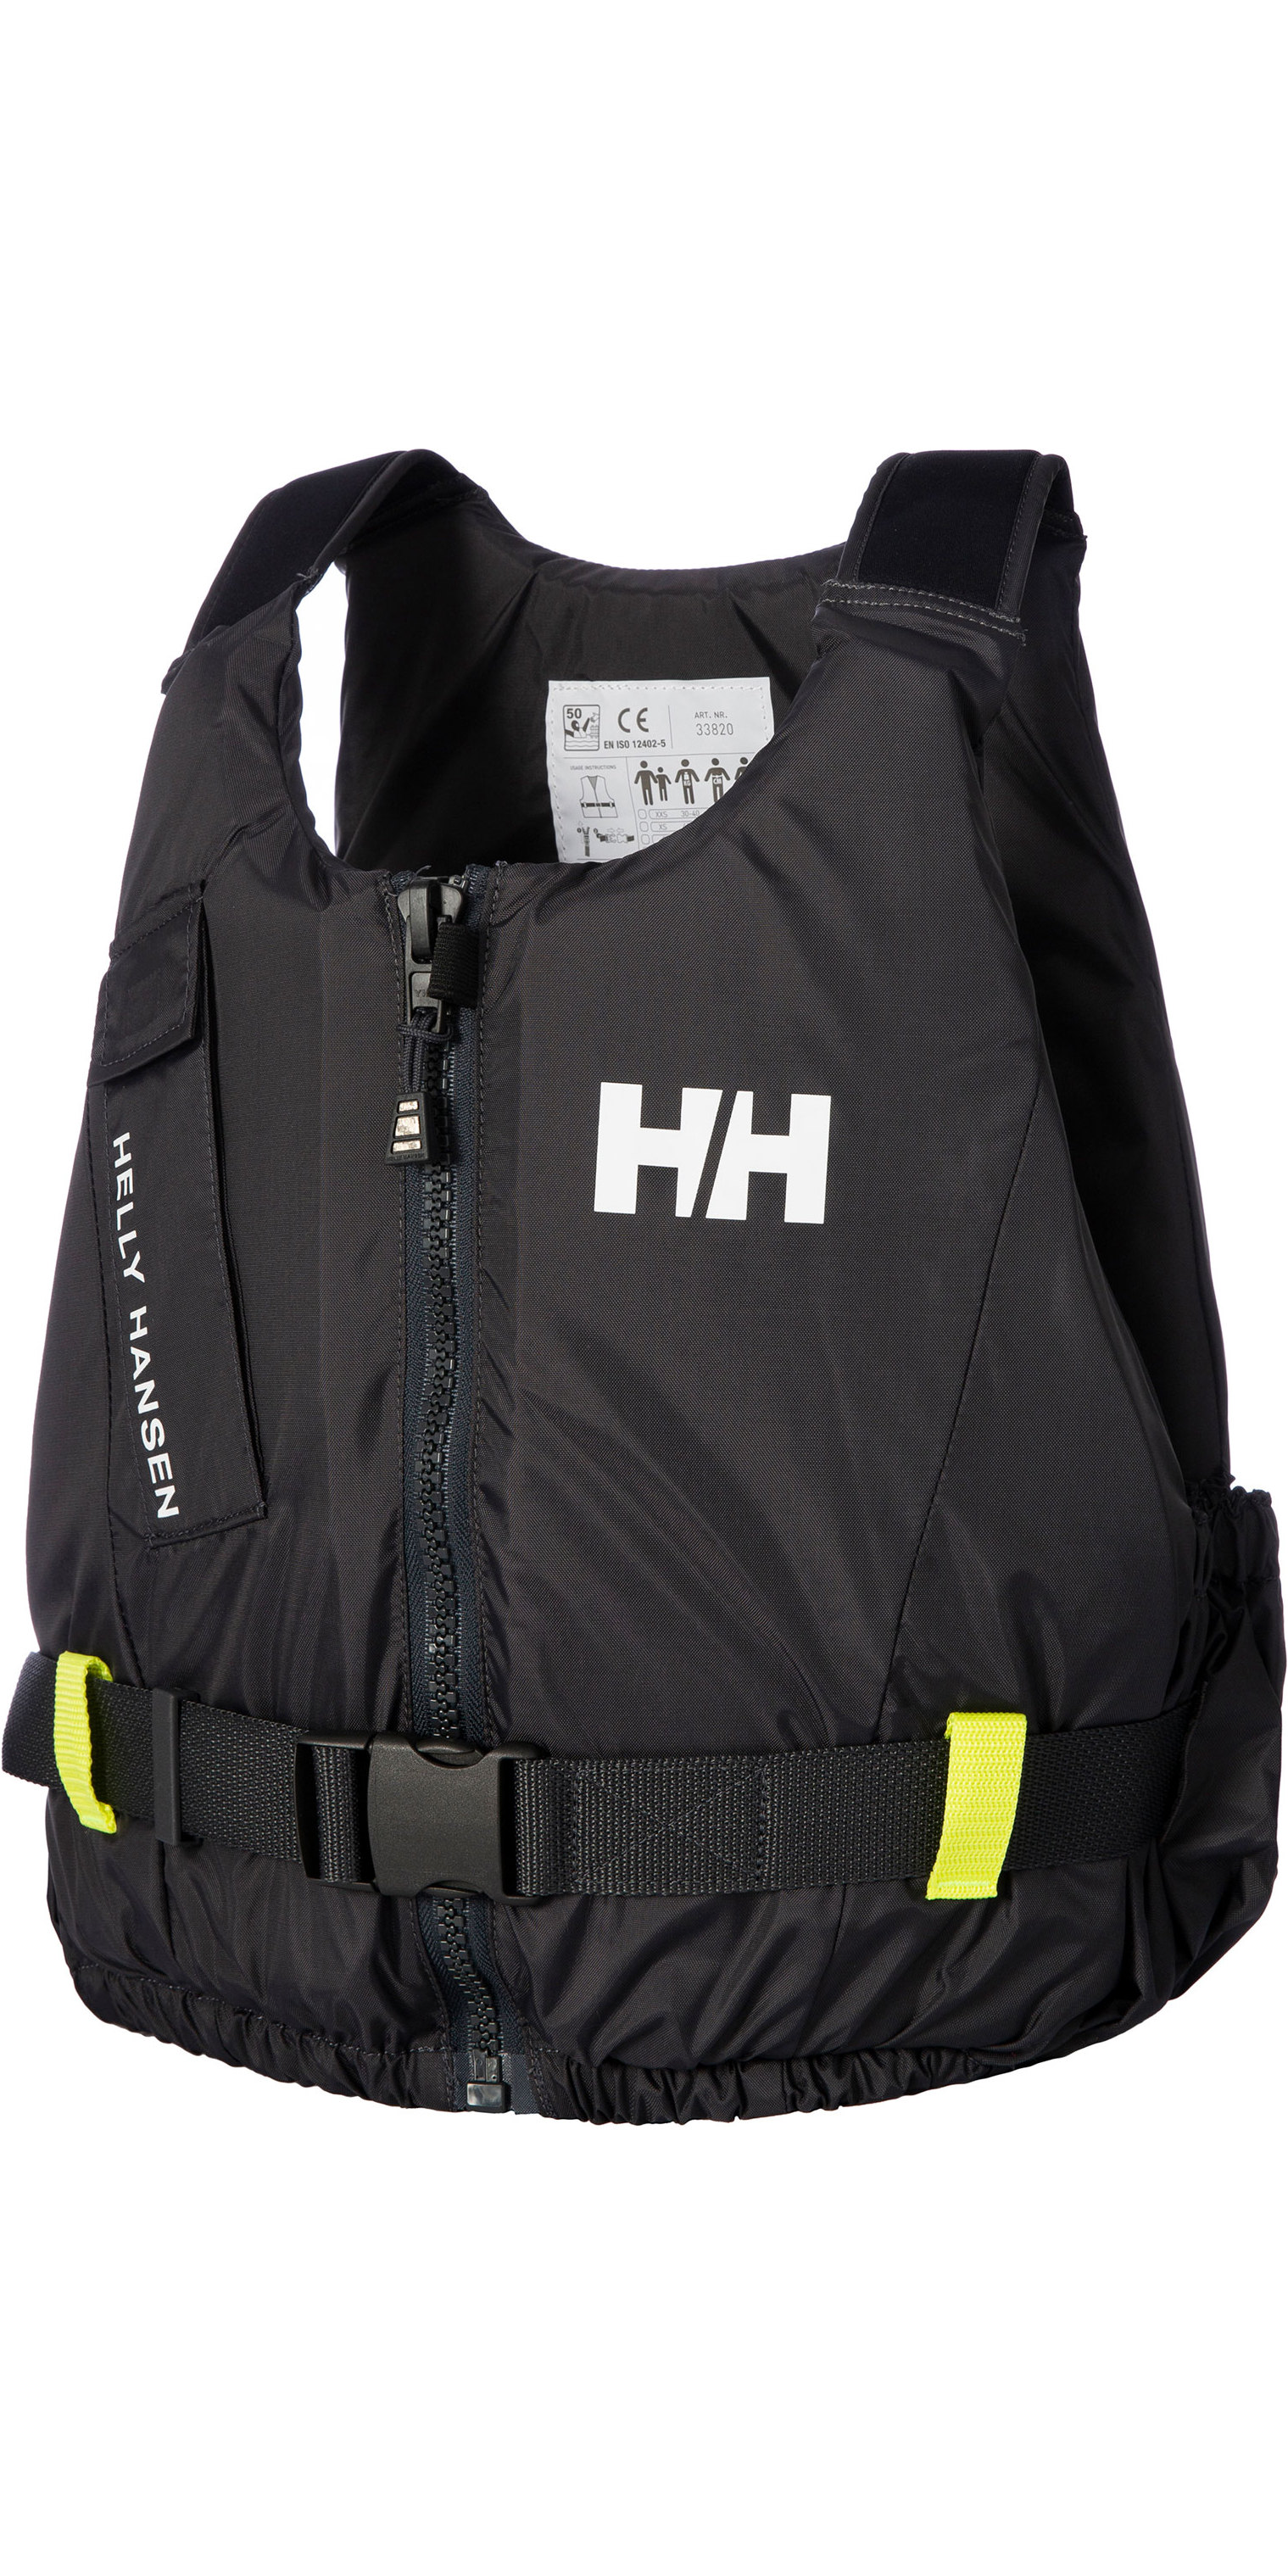 2020 Helly Hansen 50N Rider Vest / Buoyancy Aid 33820 - Ebony